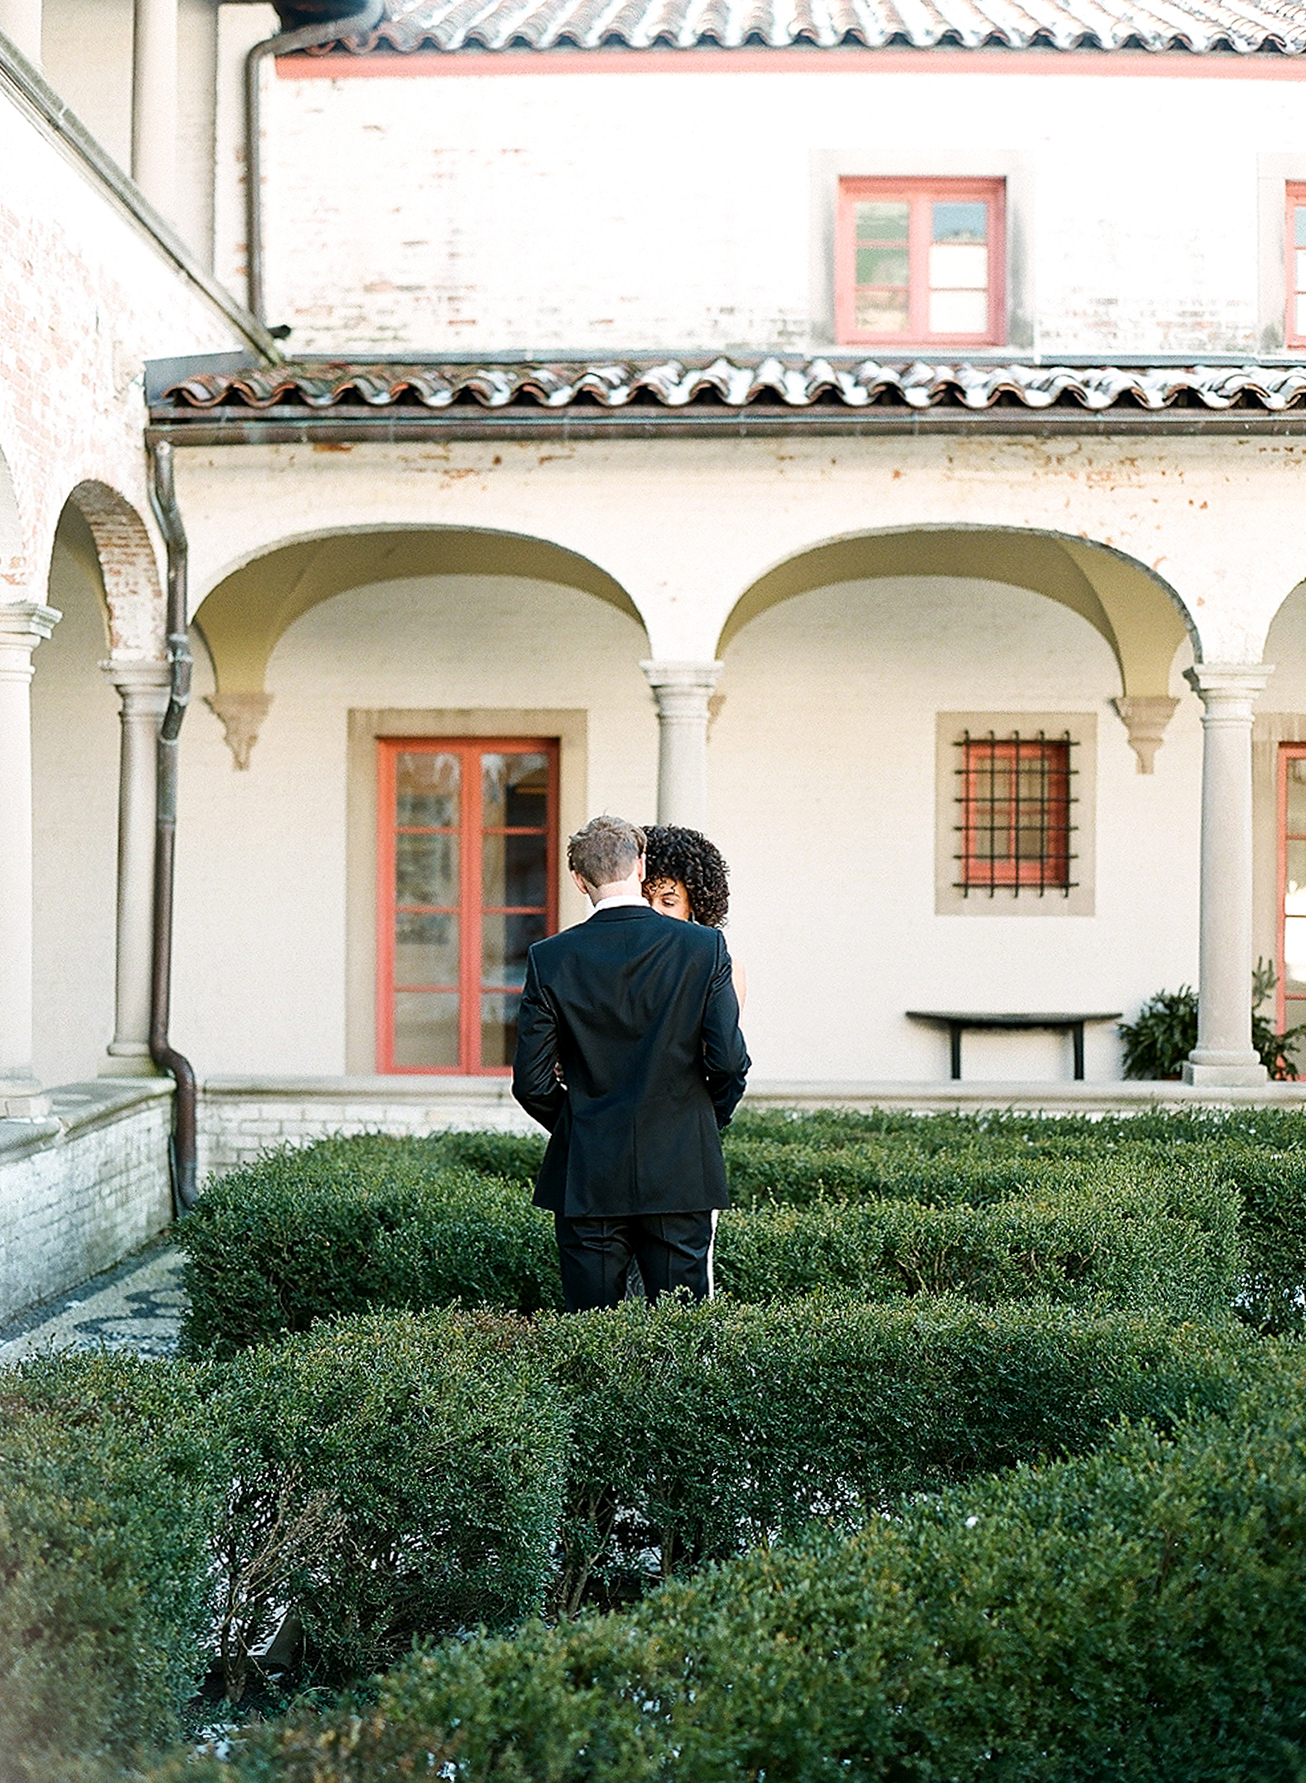 europe style couple in courtyard